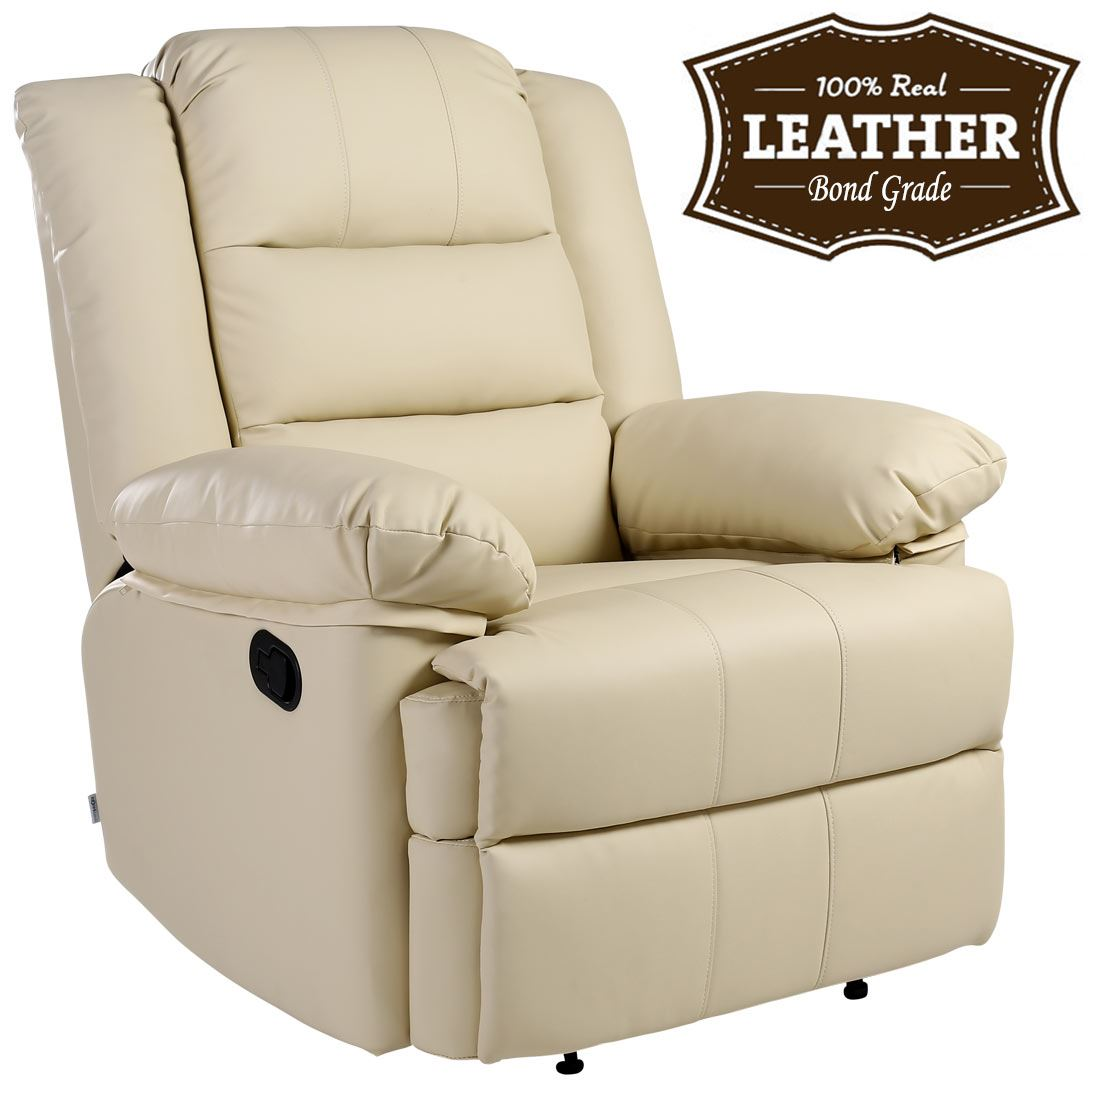 Loxley Cream Leather Recliner Armchair Sofa Home Lounge Chair Reclining Gaming Ebay